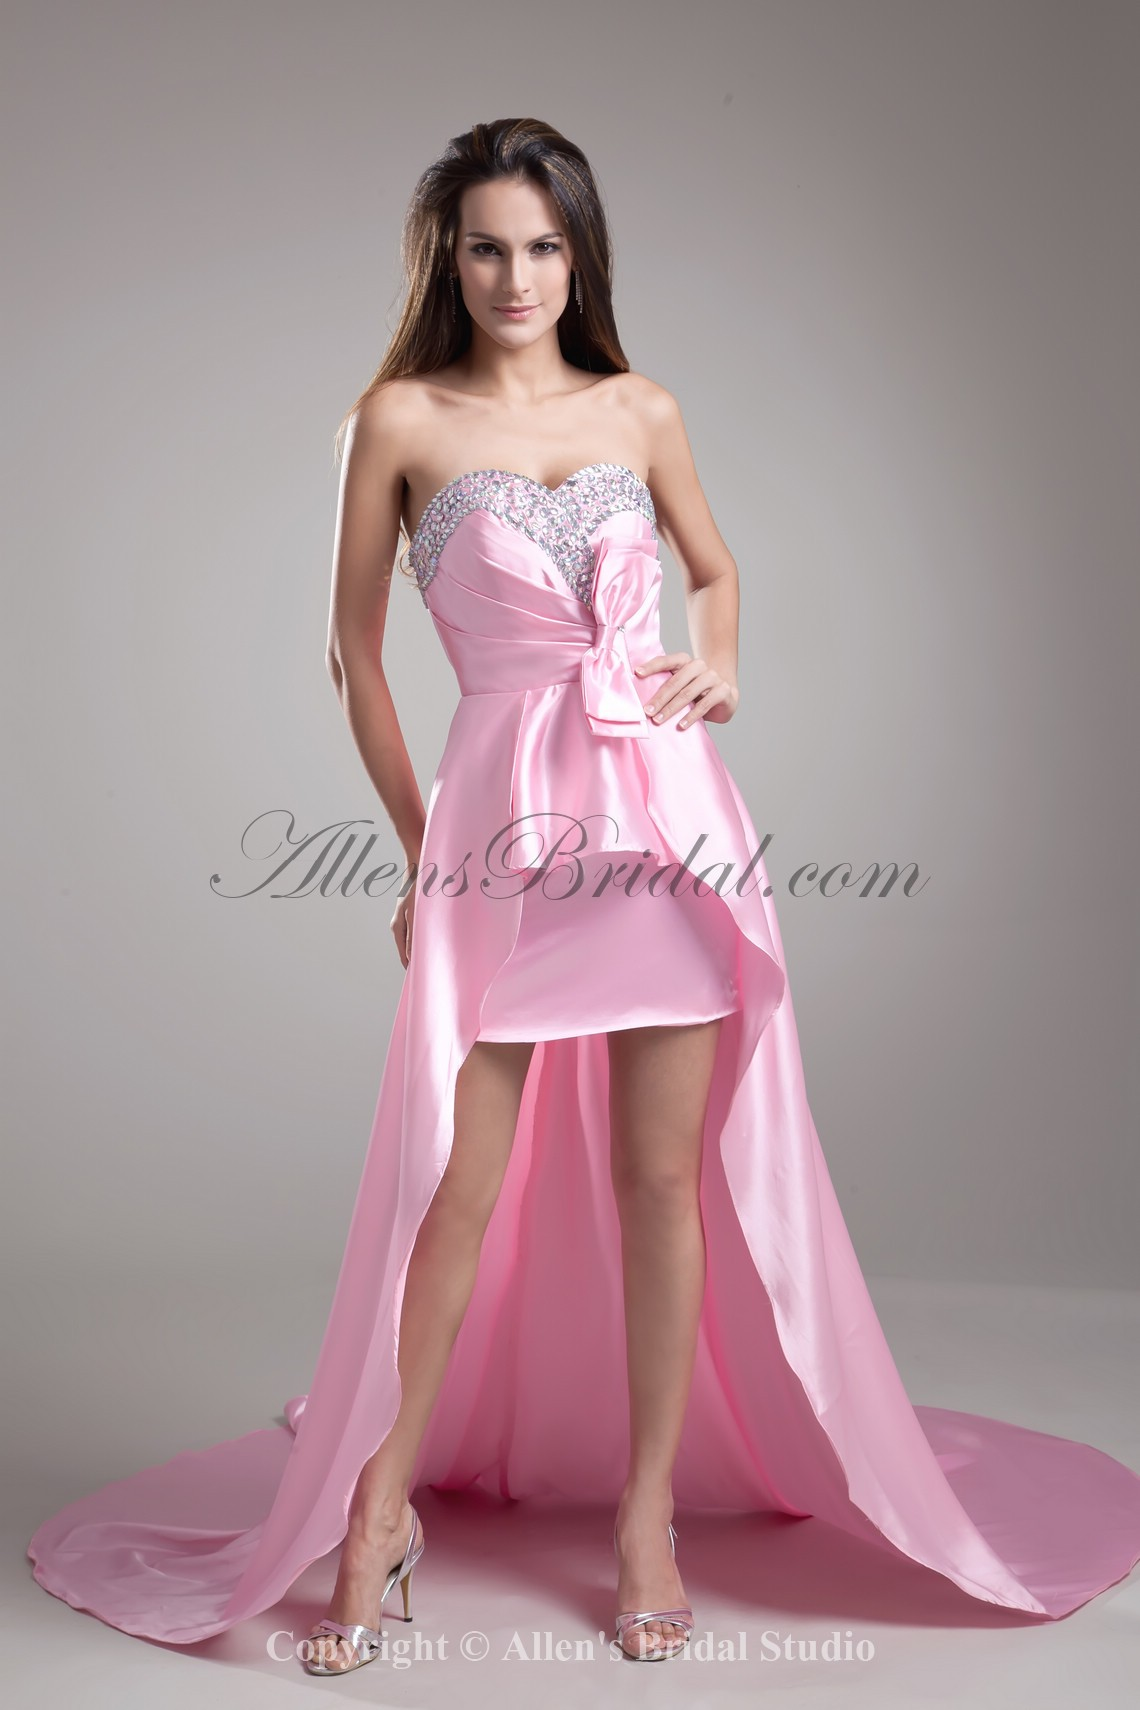 /705-5645/satin-sweetheart-neckline-sweep-train-a-line-crystals-prom-dress.jpg